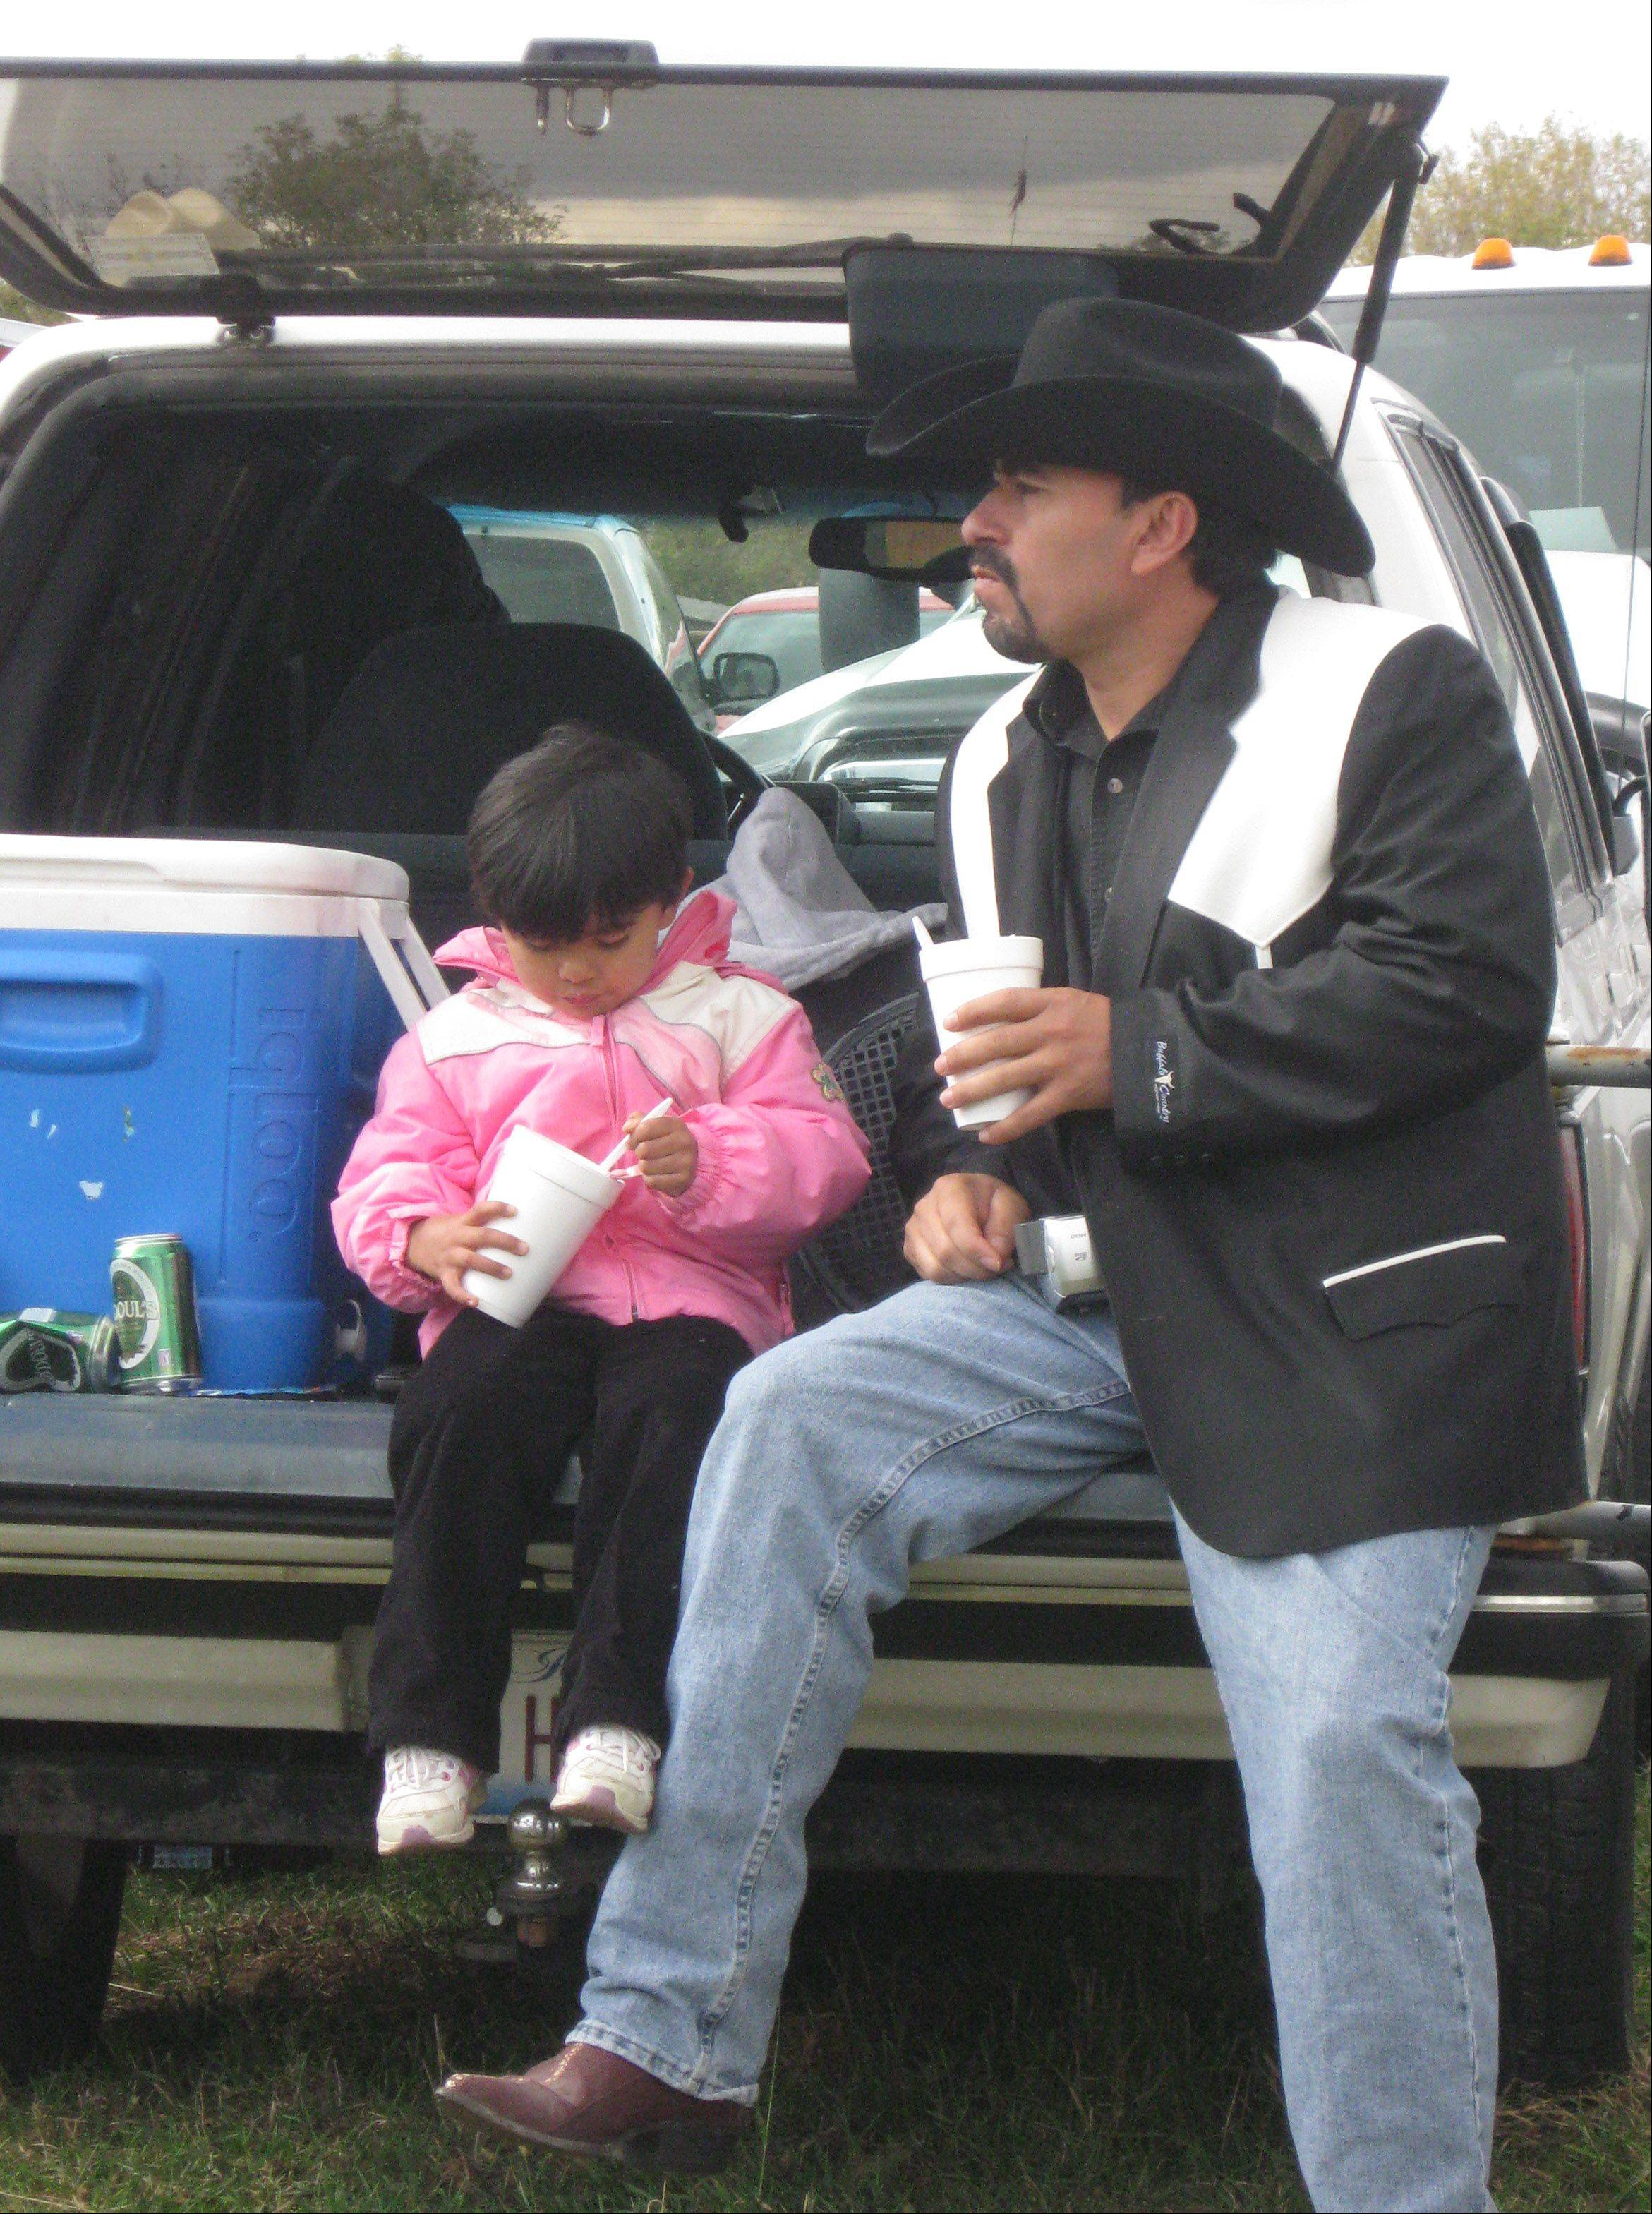 José Rivera and his daughter, Starlight, of Crystal Lake take a break from horse races at Poker de Ases Ranch and Training Center in Union. Each race lasts about 14 seconds, with 30 minutes between races to eat and mingle with friends.